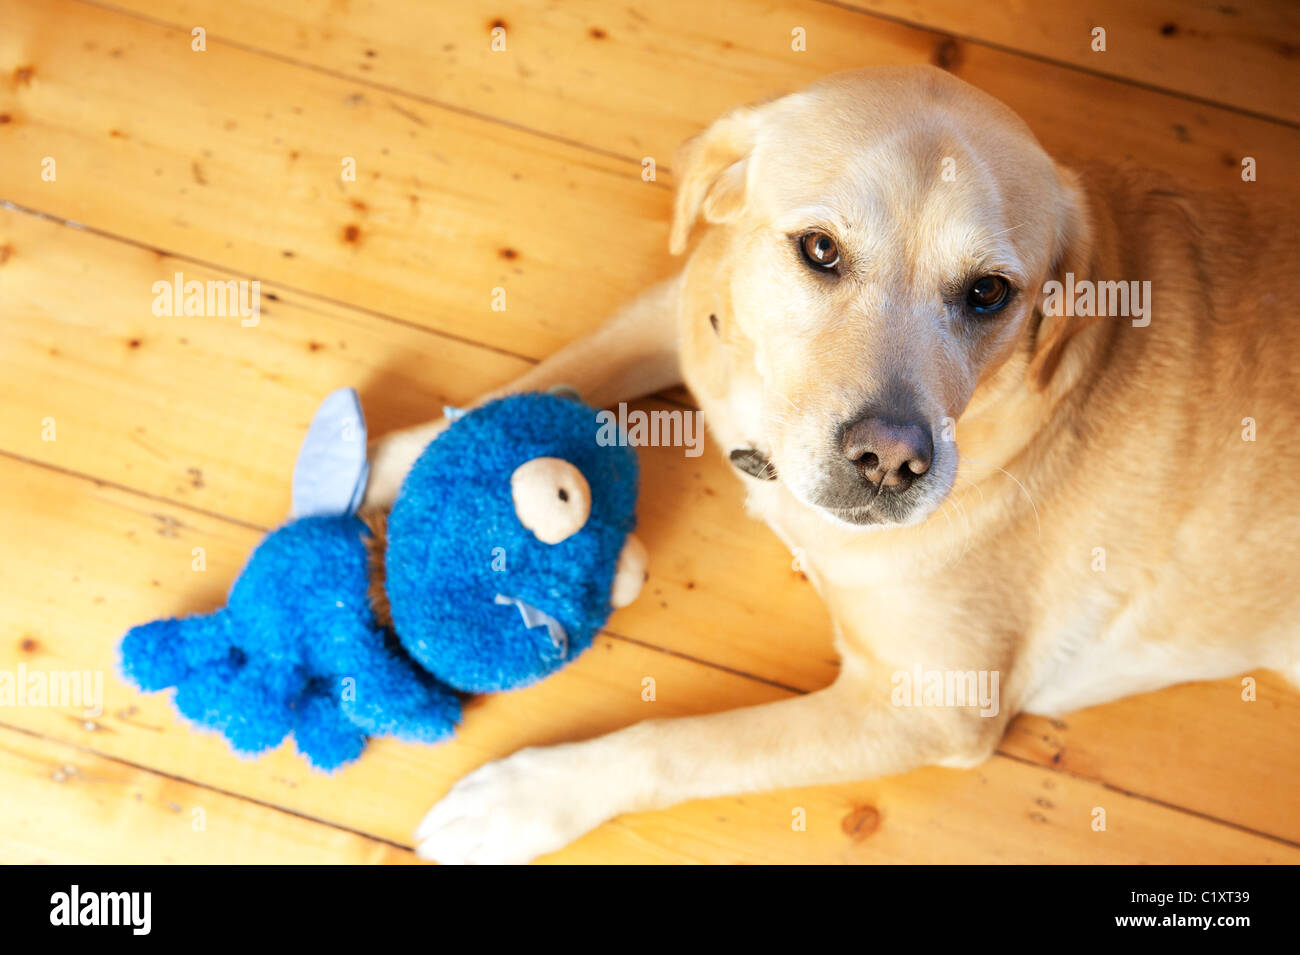 Labrador dog with soft toy at home indoors - Stock Image